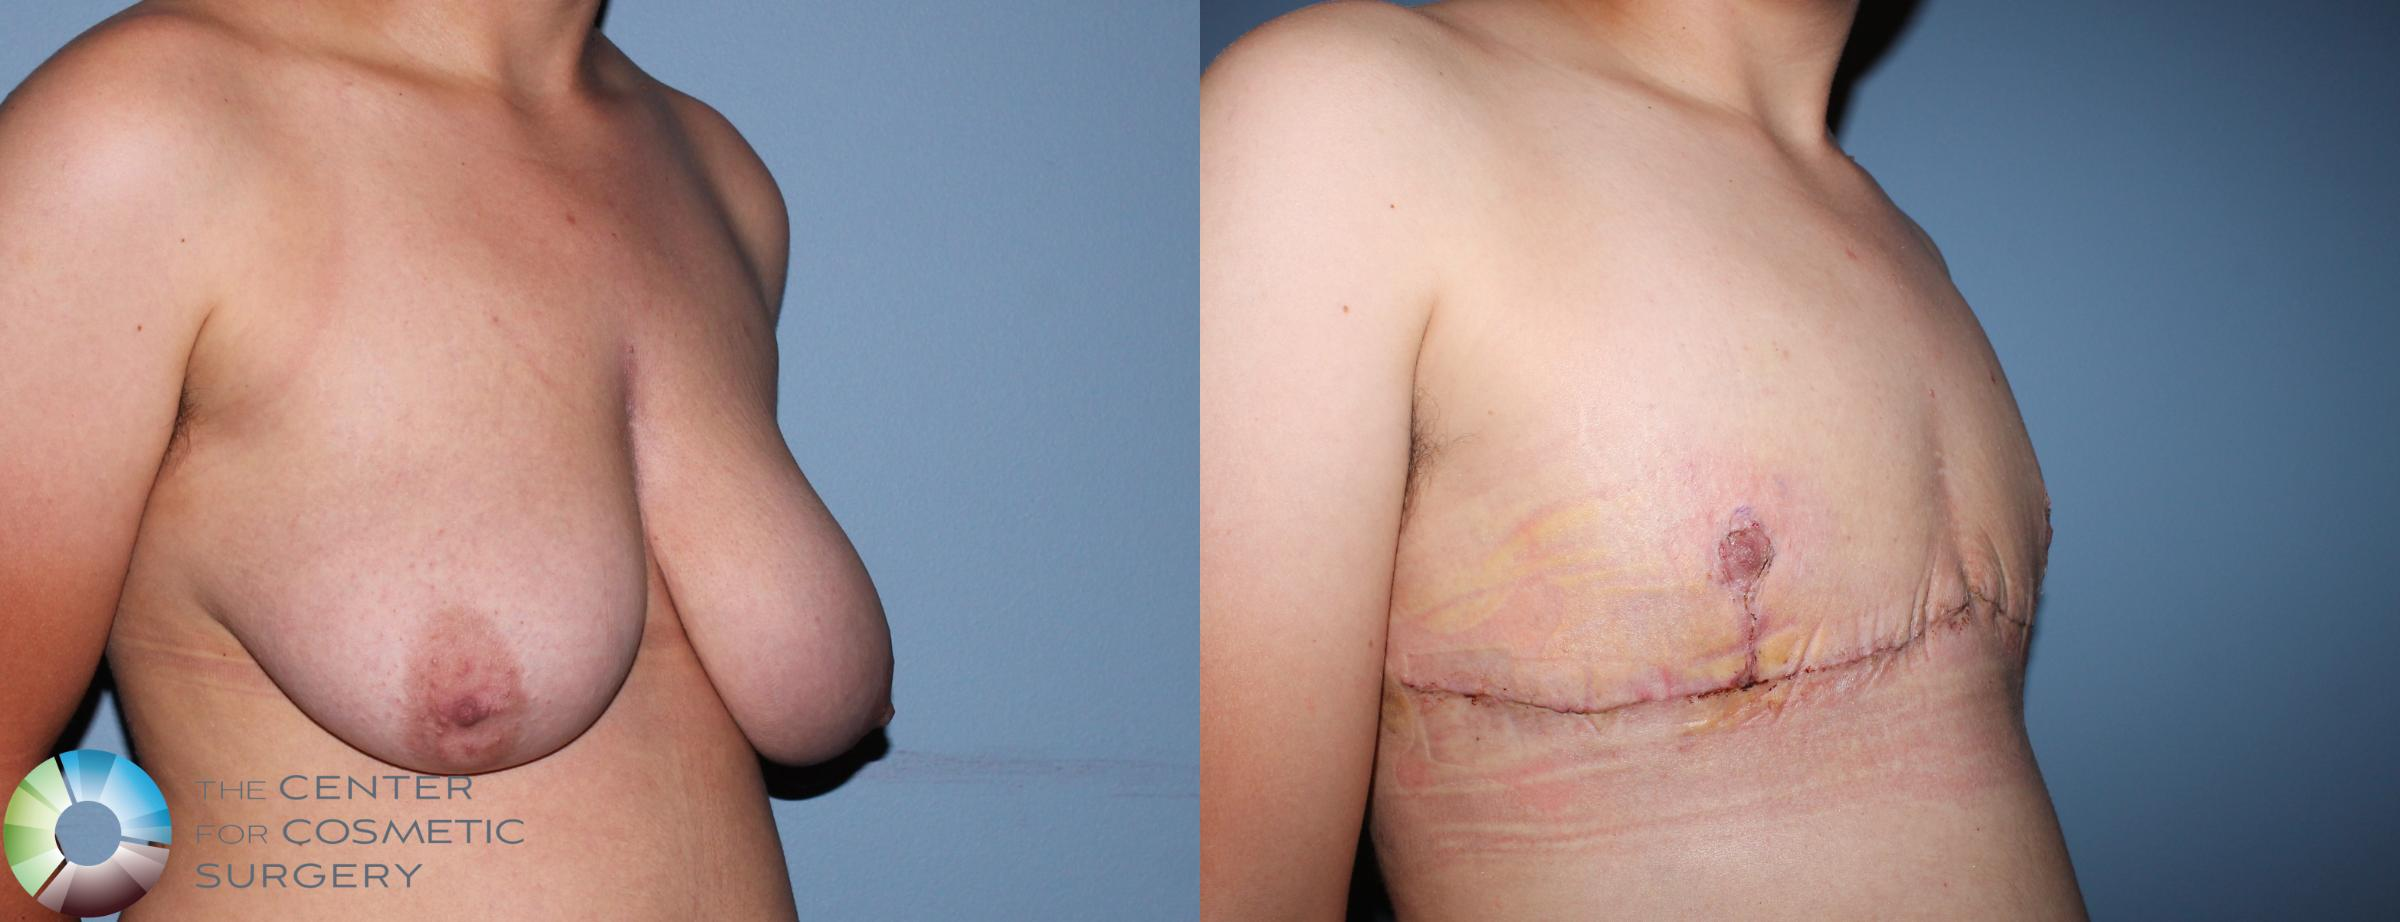 FTM Top Surgery/Chest Masculinization Case 11201 Before & After Right Oblique | Golden, CO | The Center for Cosmetic Surgery